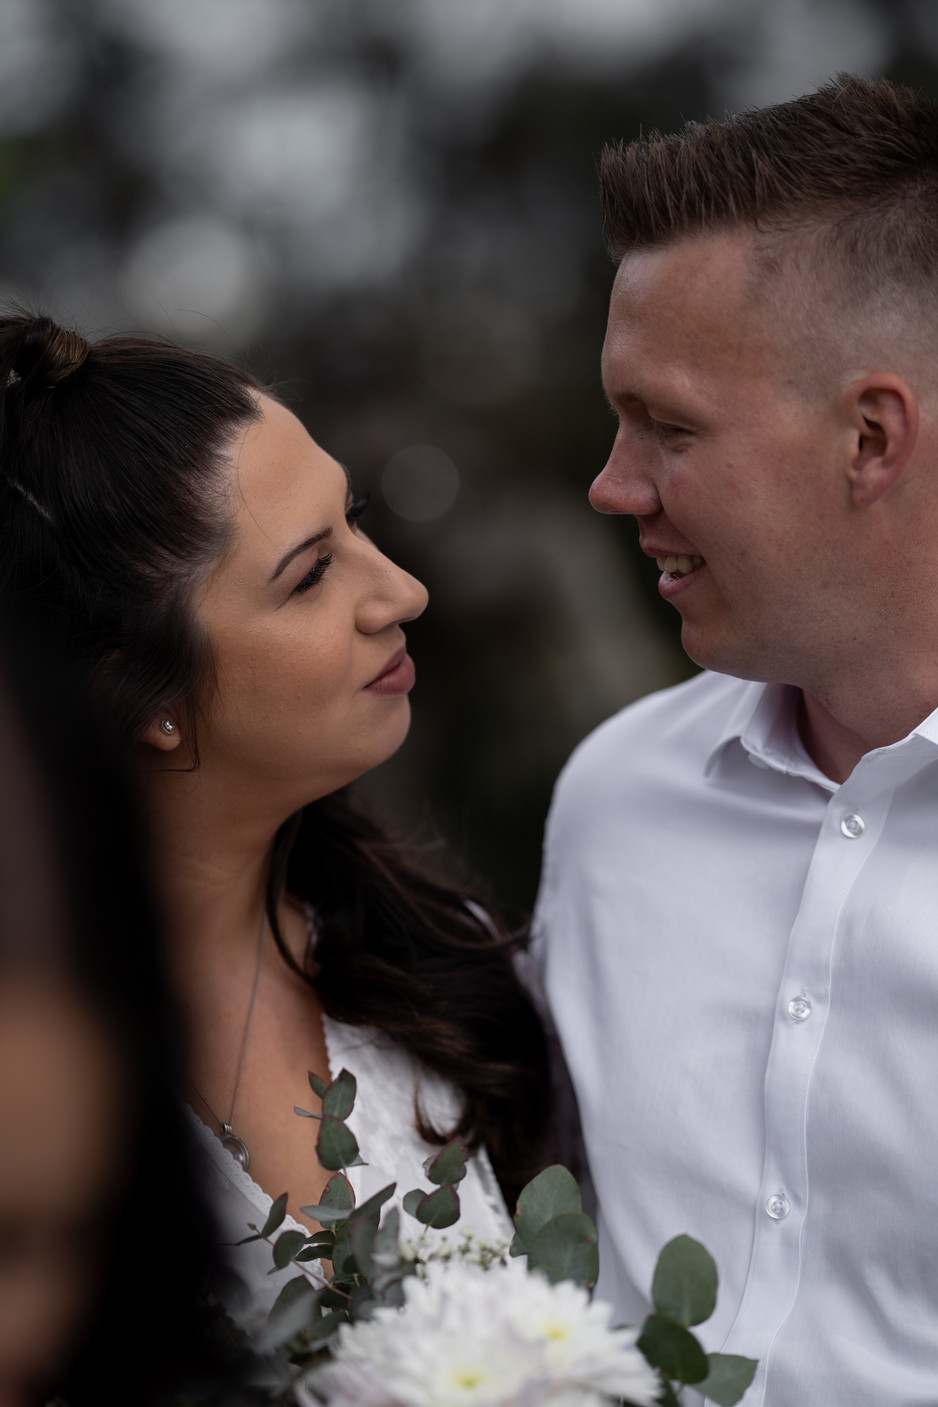 Bride and groom staring at each other